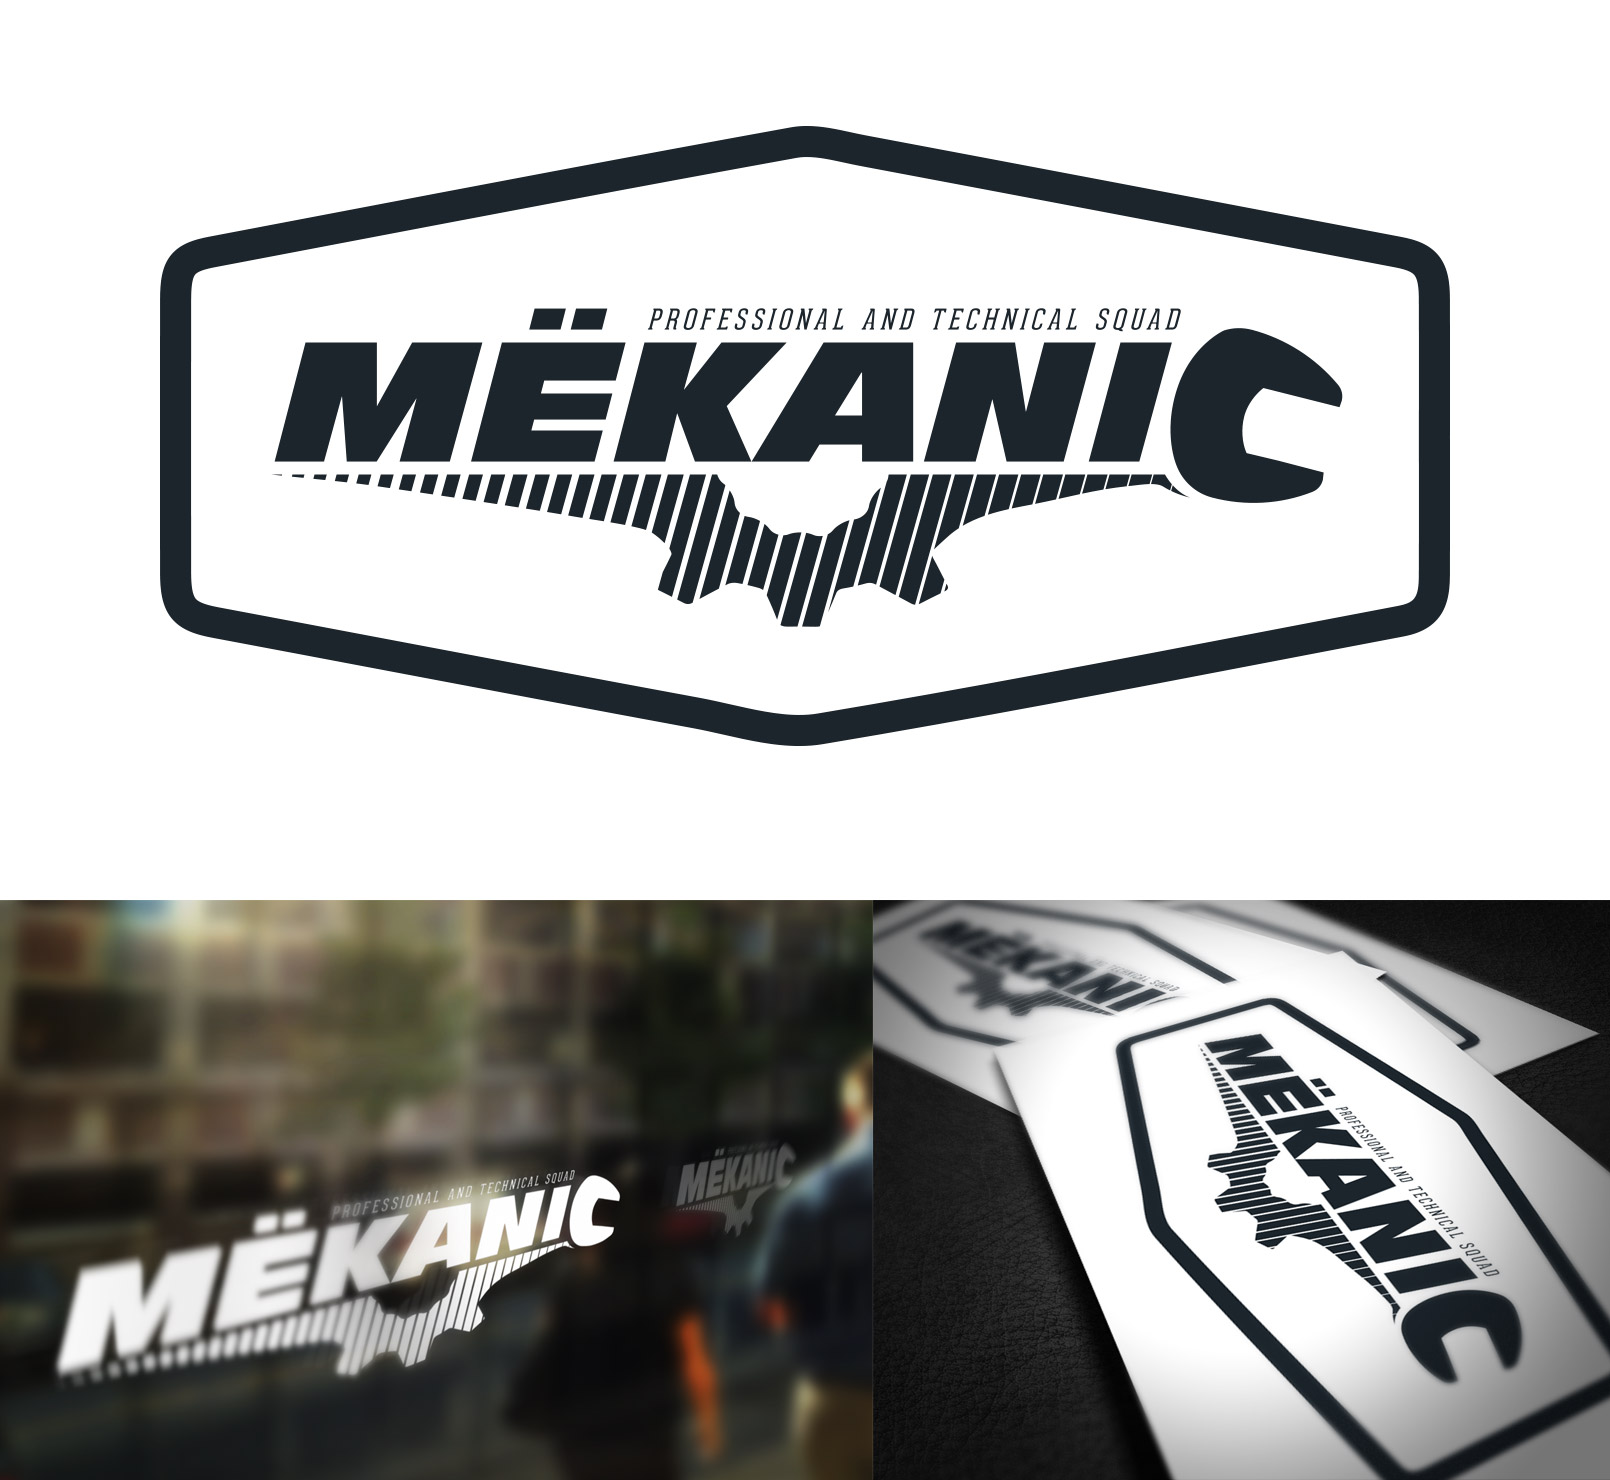 Logo Design by olii - Entry No. 216 in the Logo Design Contest Creative Logo Design for MËKANIC - Professional and technical squad.